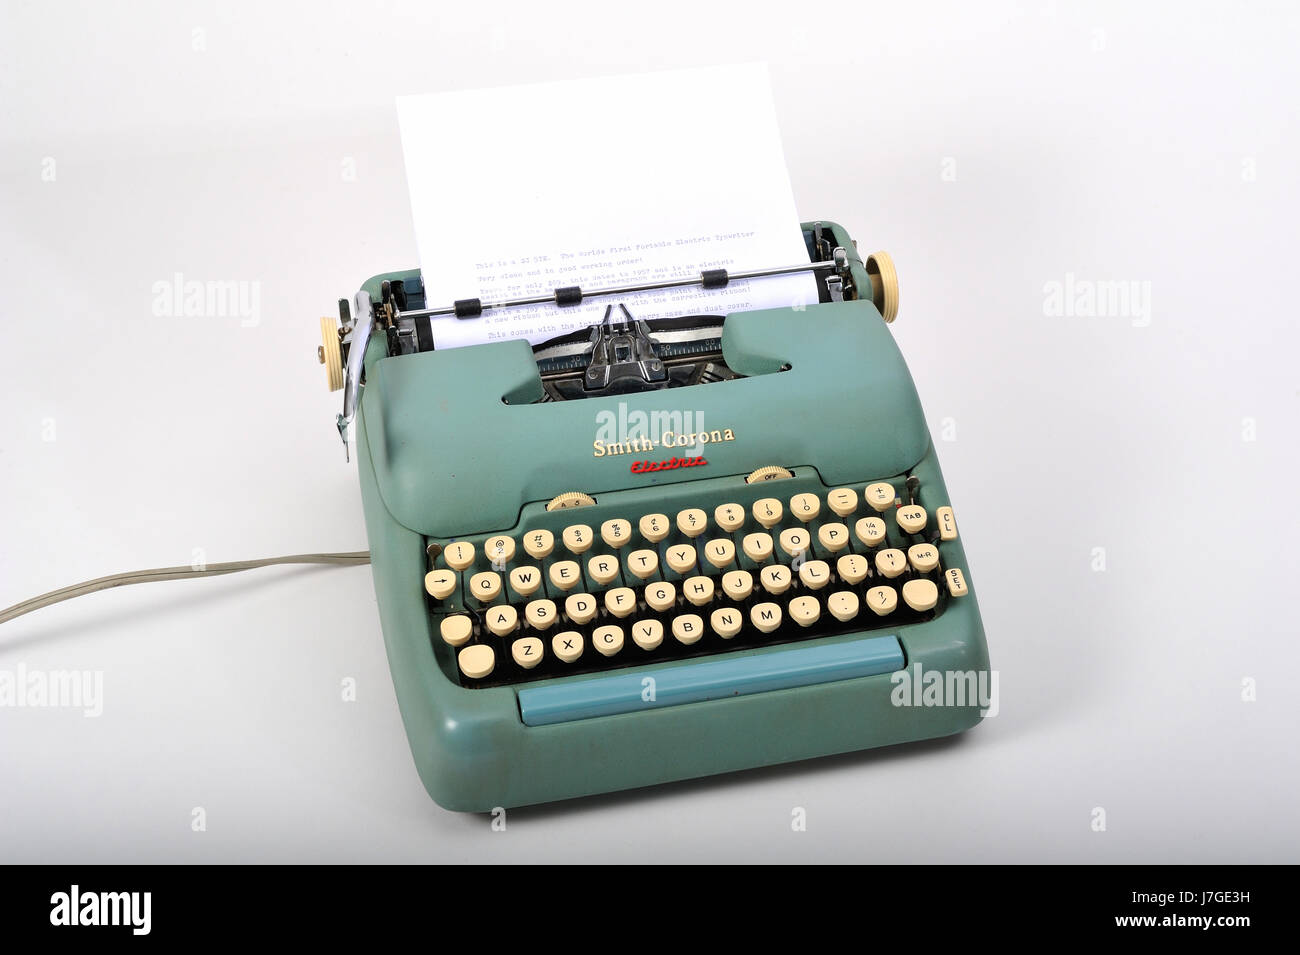 1950's Smith Corona electric typewriter.  This model was the first electric typewriter although it still had - Stock Image